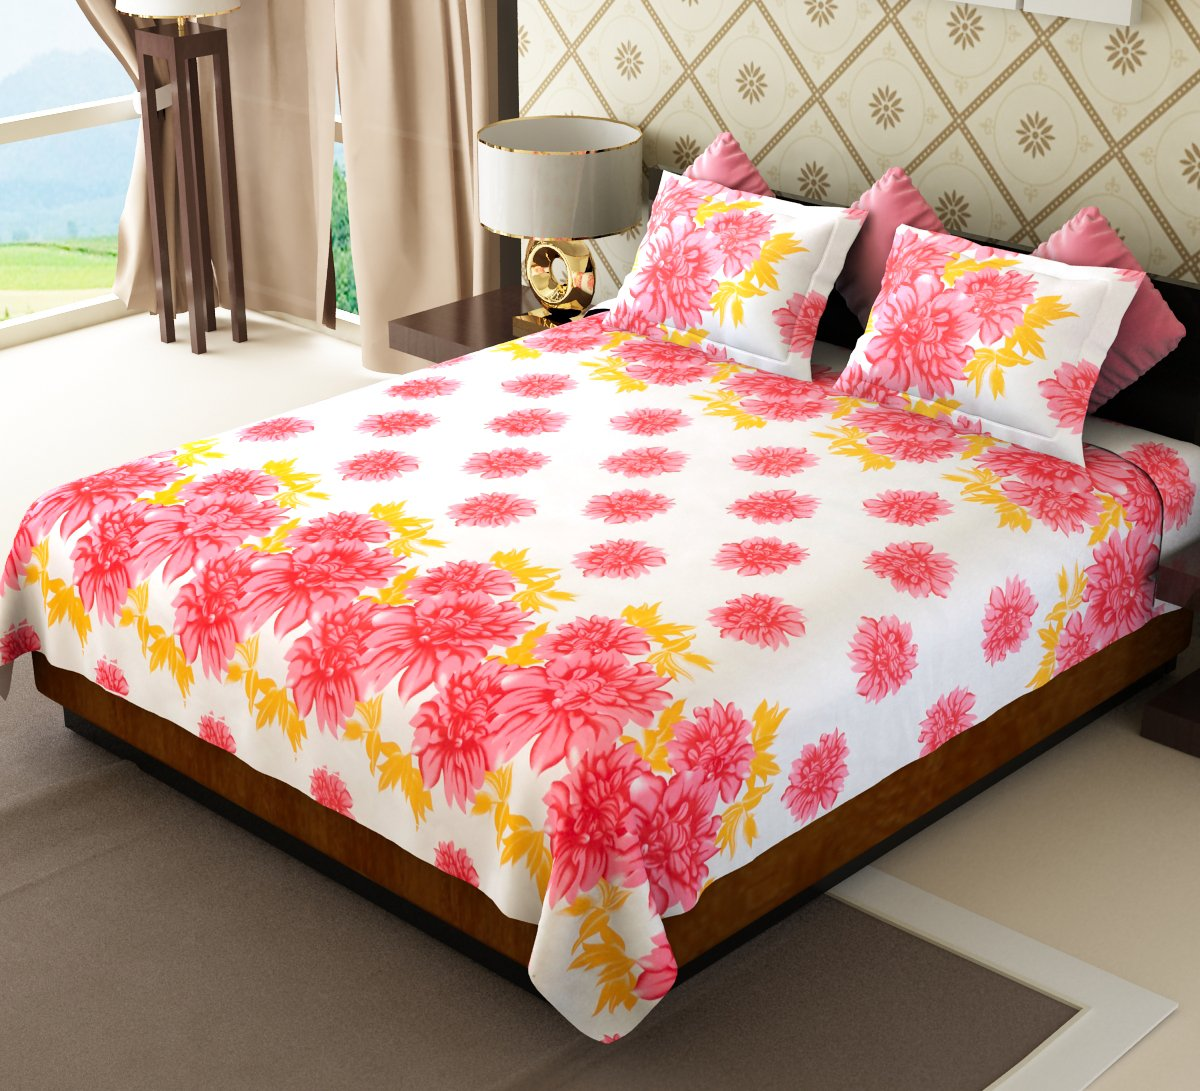 71M8TeZUVoL._SL1200_ Home Furnishing 50% off or more from Rs. 149 – Amazon